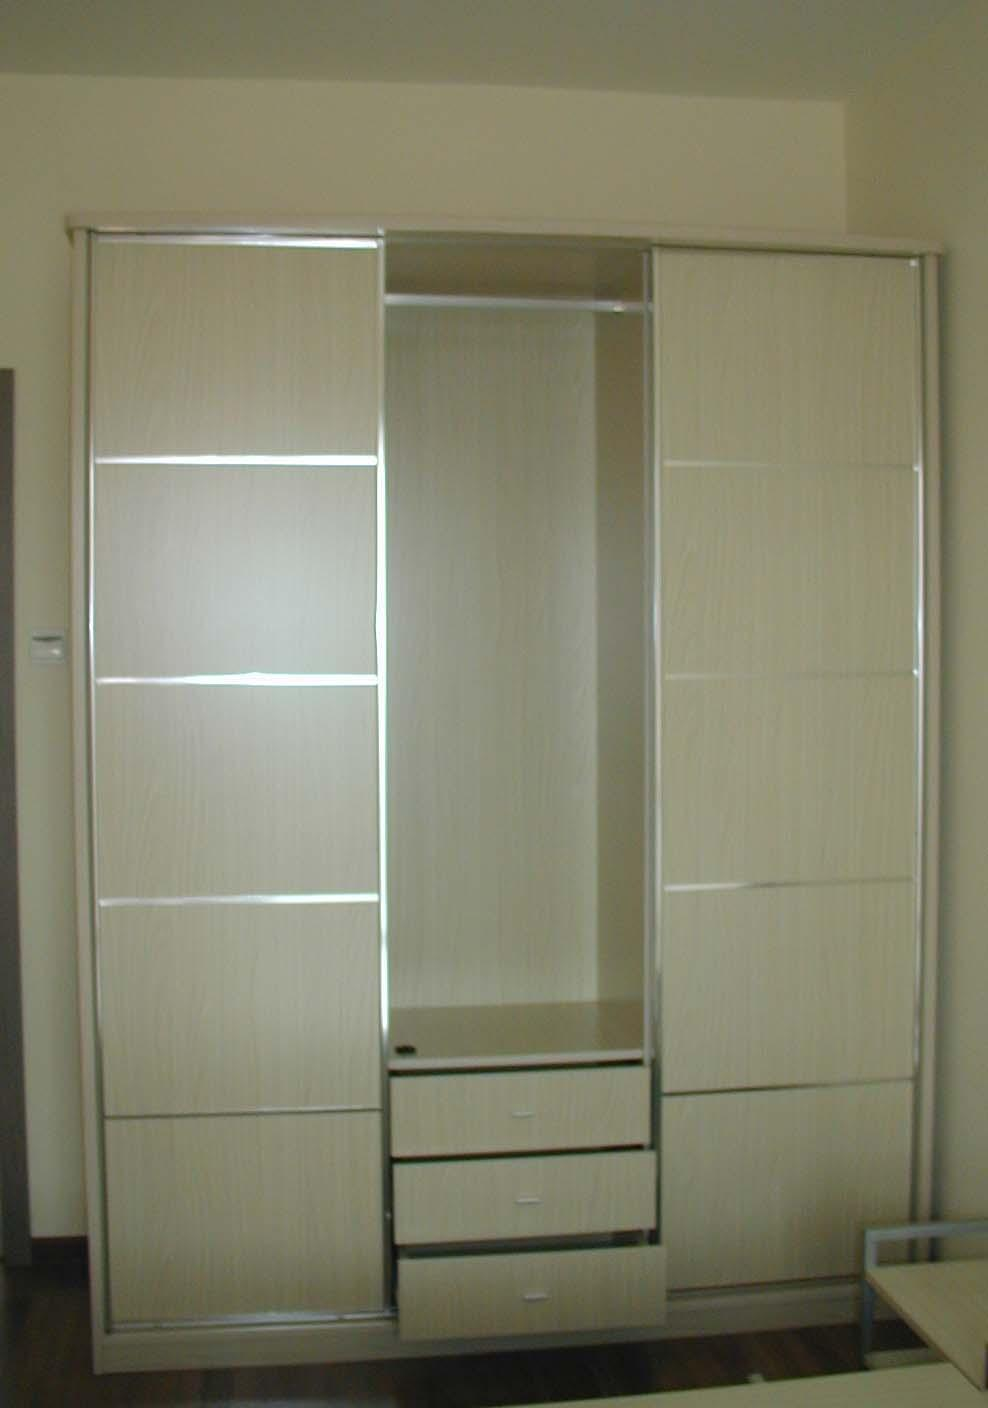 Chic modern closet doors for bedrooms roselawnlutheran for Bedroom closet barn doors